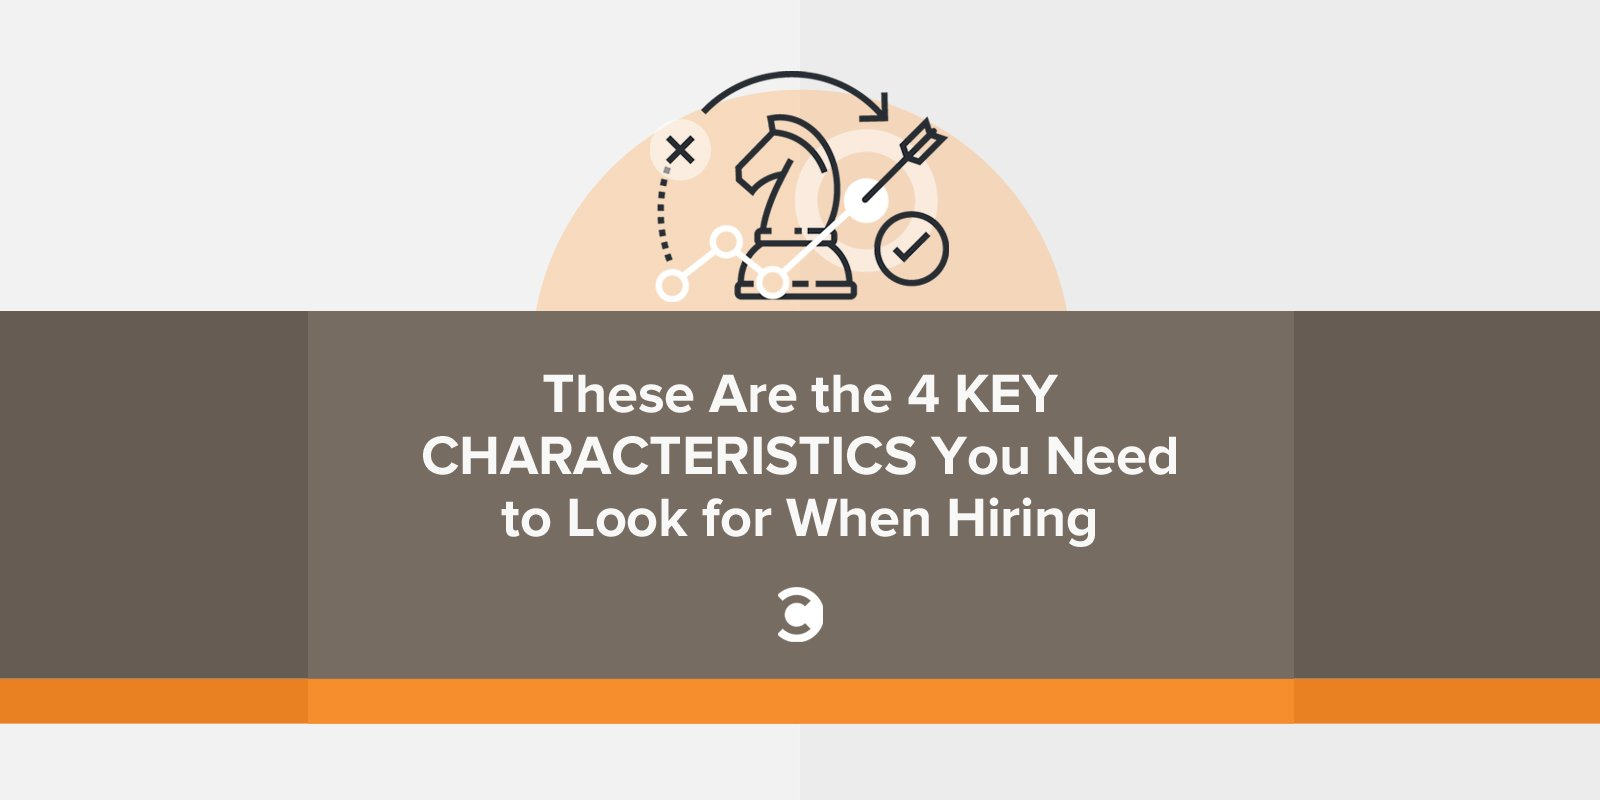 These Are the 4 Key Characteristics You Need to Look for When Hiring